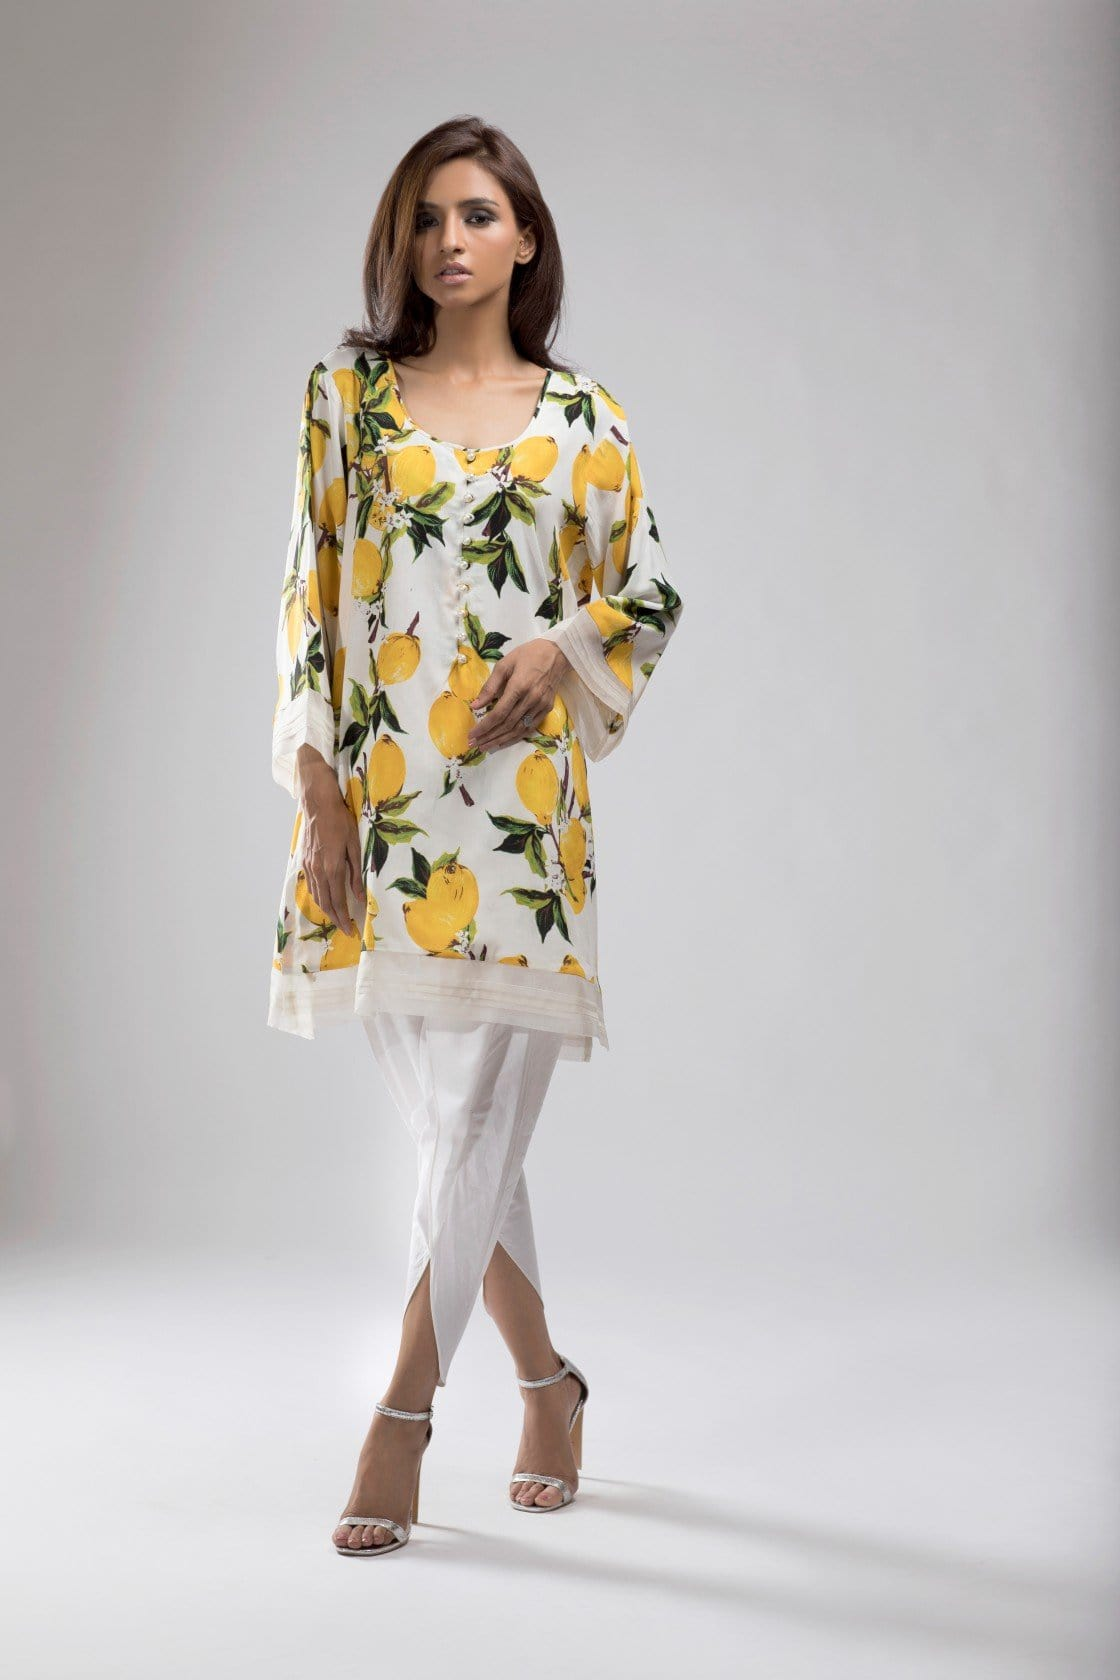 Shehrnaz - Off White With Lemon Print Tunic Clearance Sale